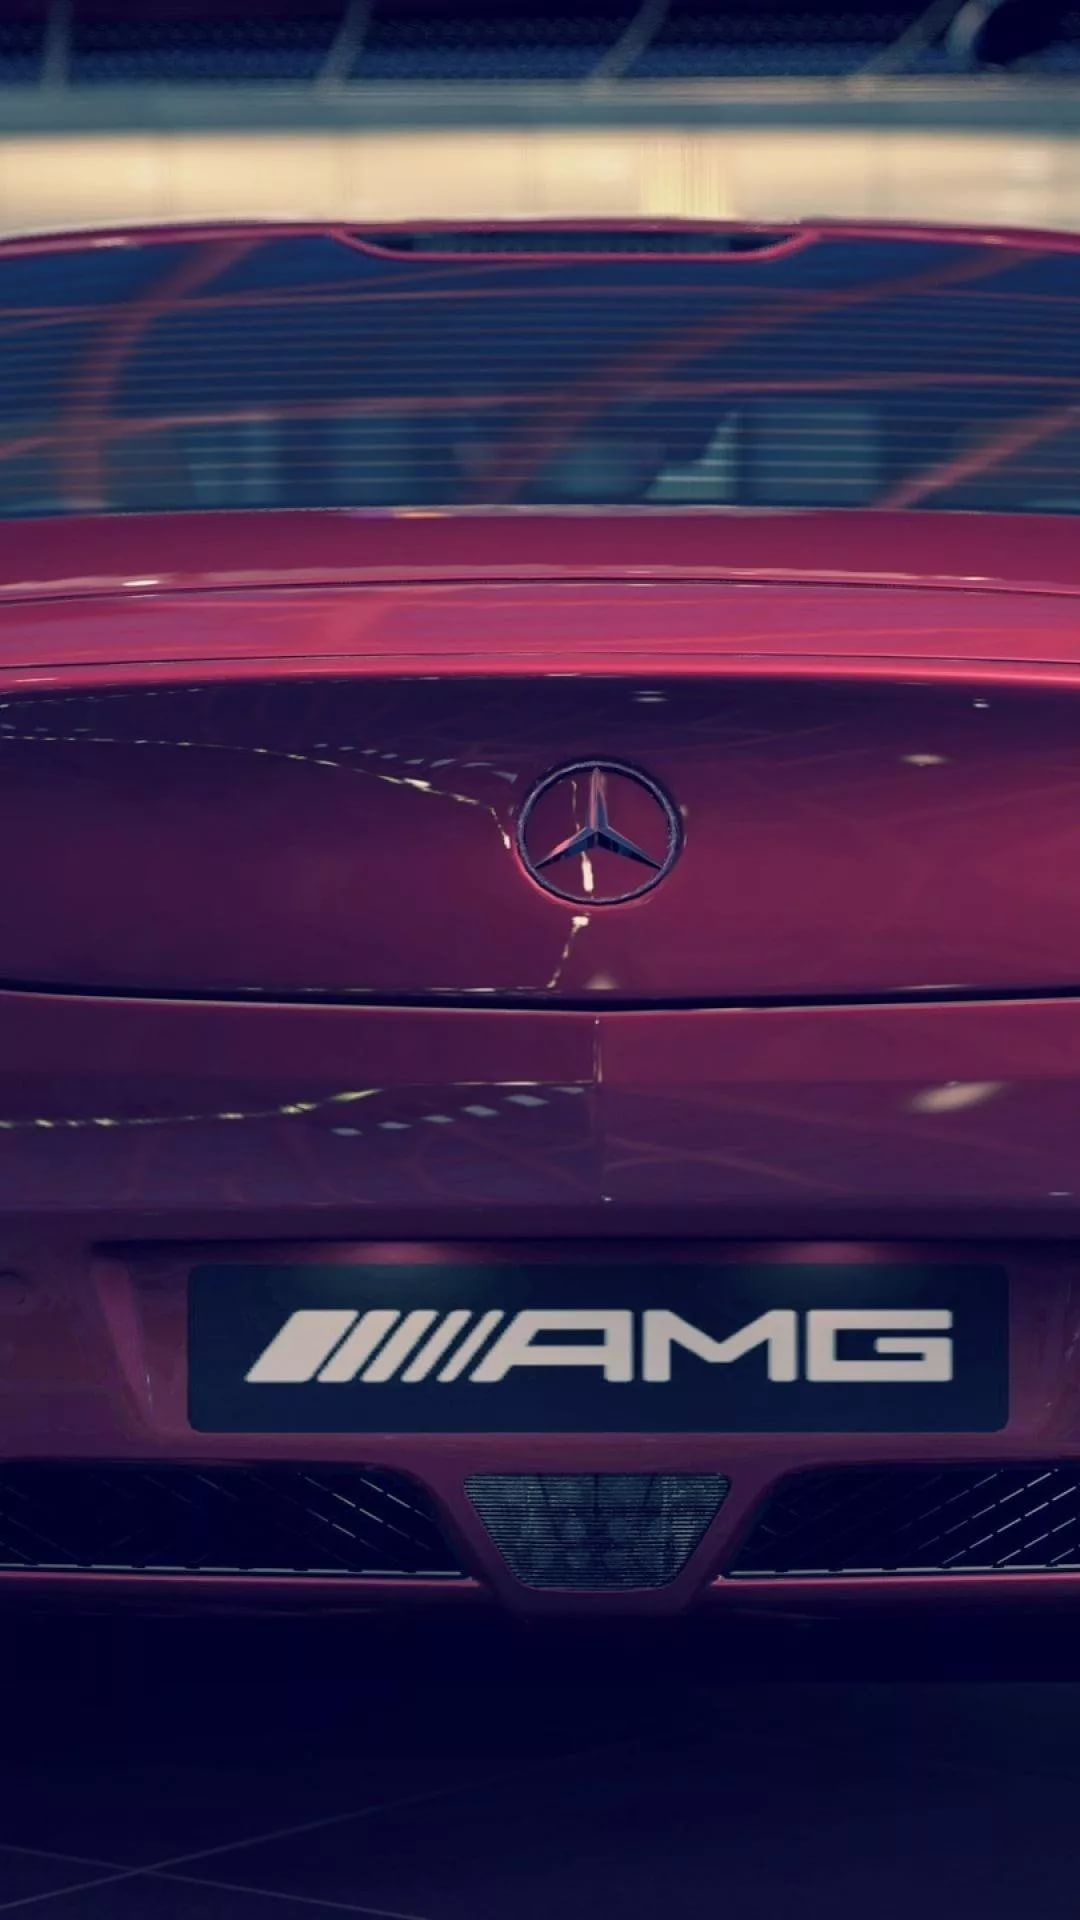 Amg Logo iPhone hd wallpaper